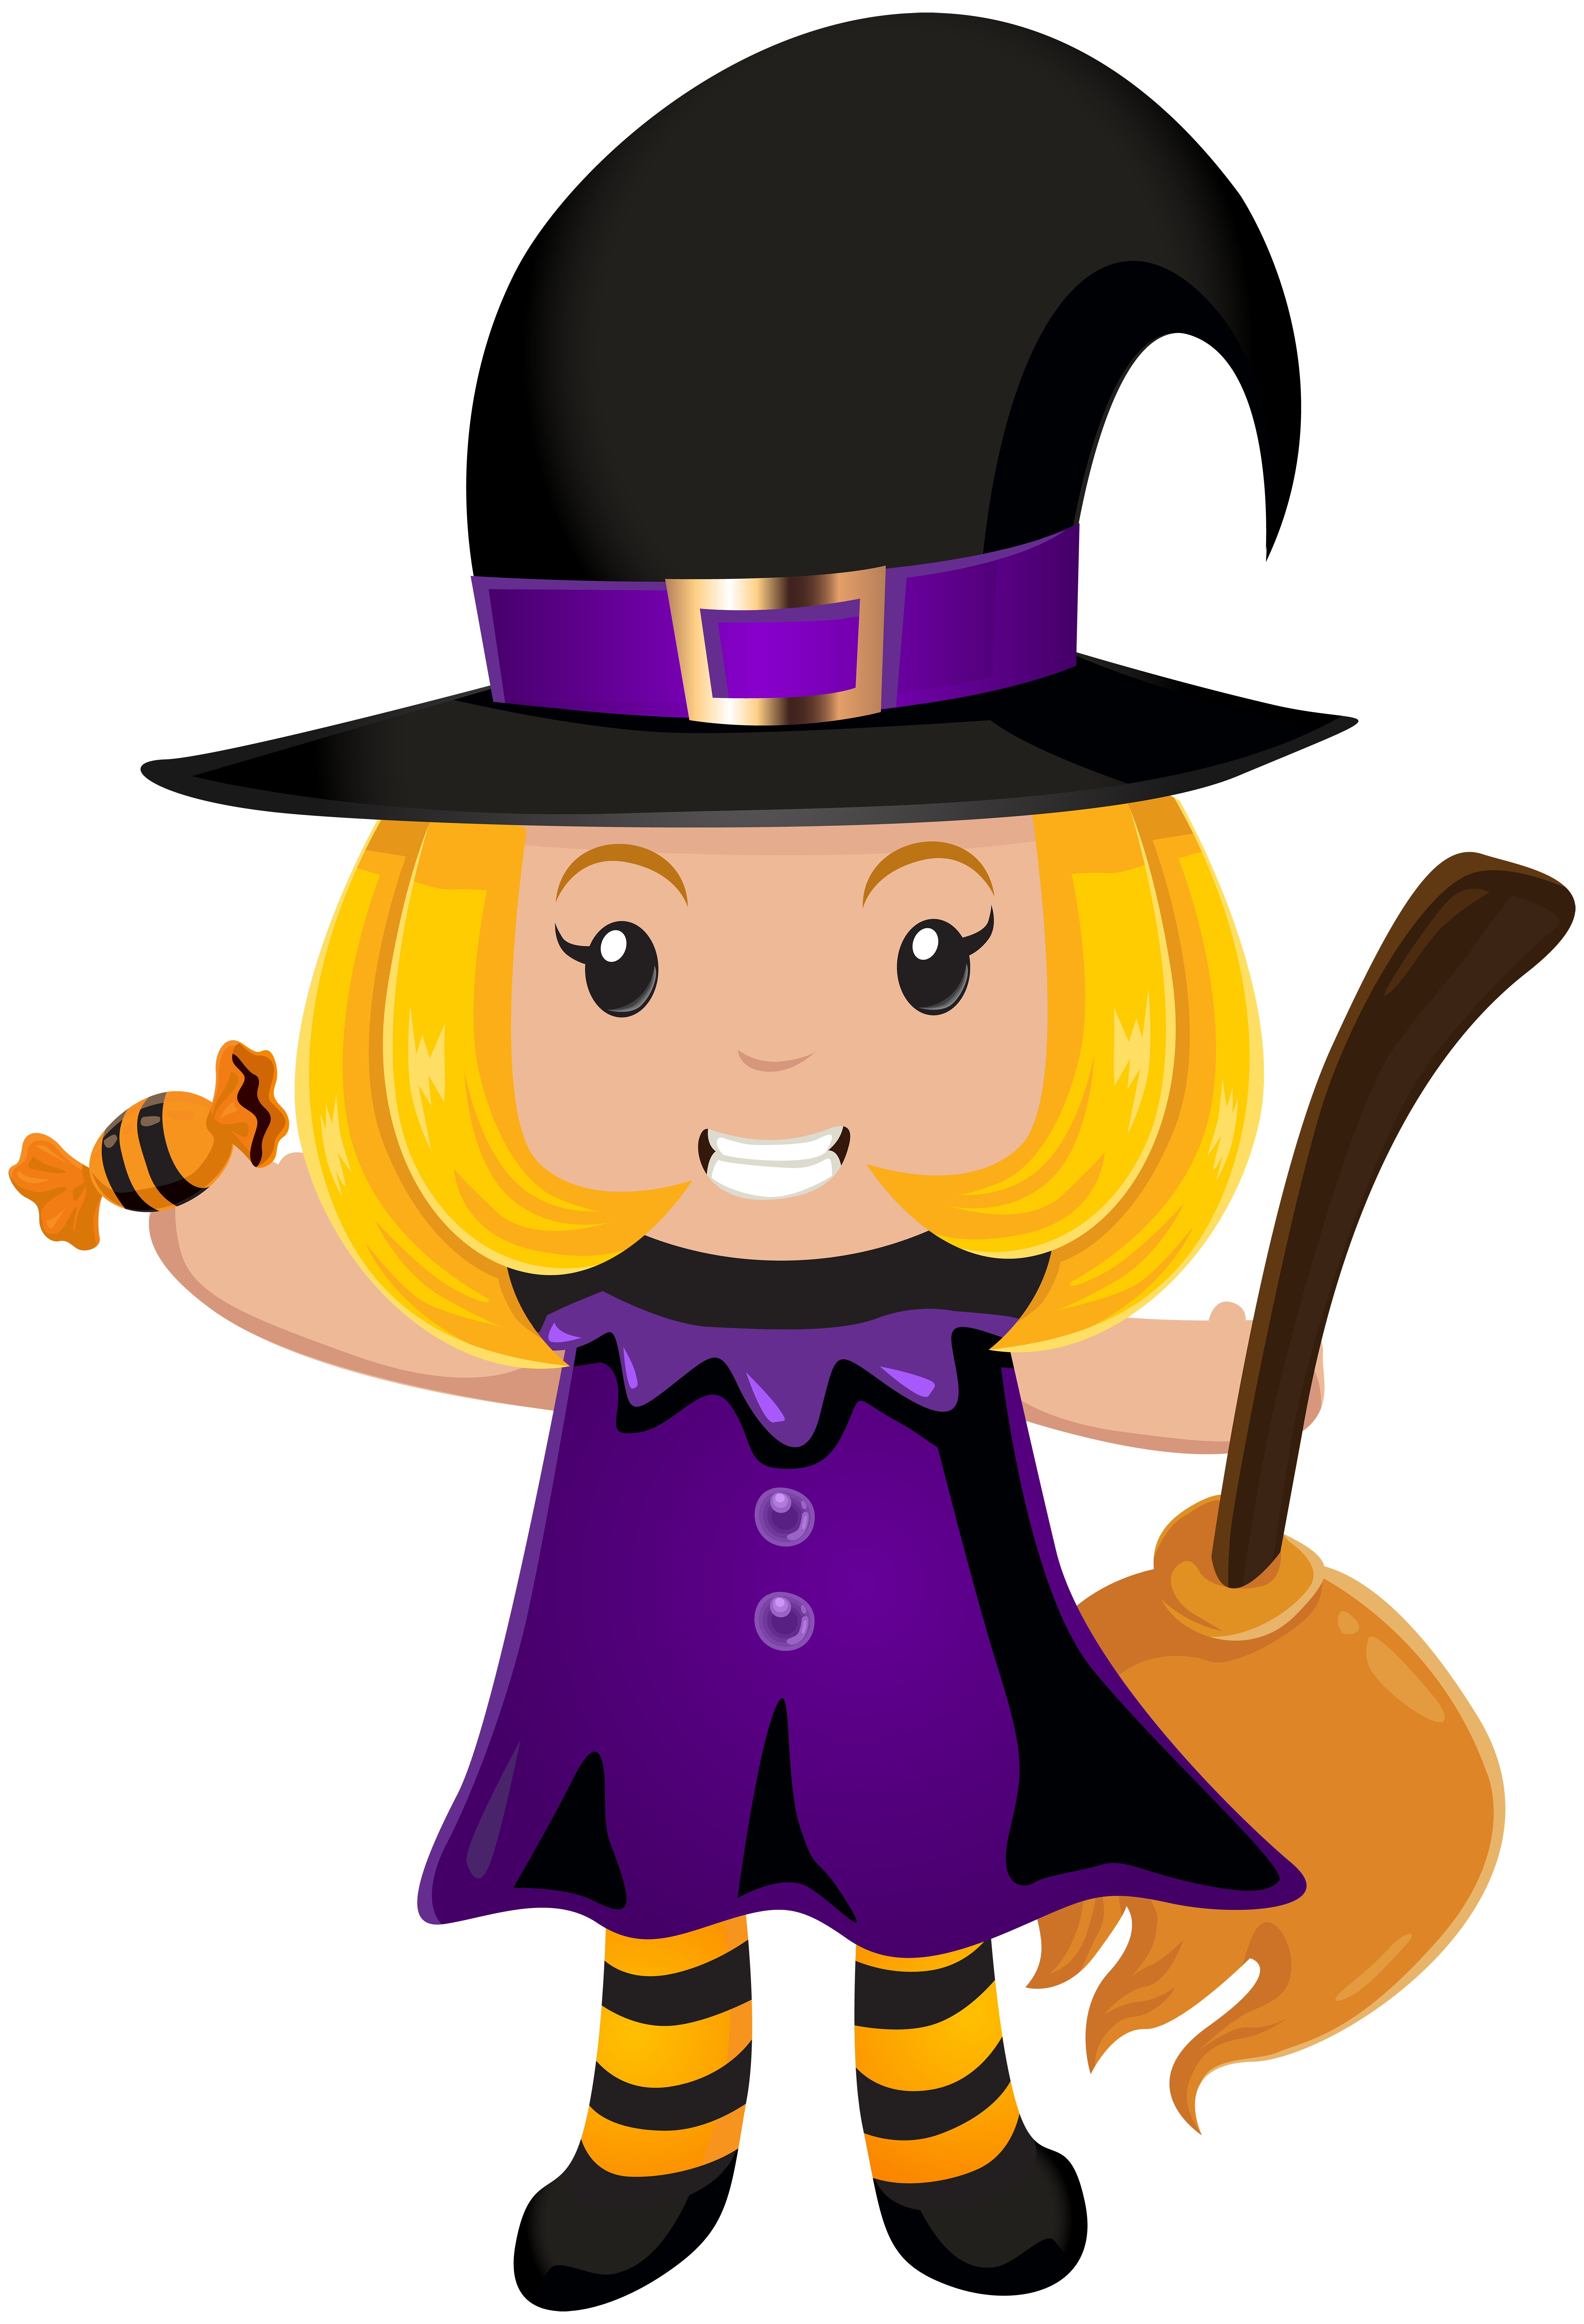 Free animated cliparts halloween. Clipart costumes images gallery